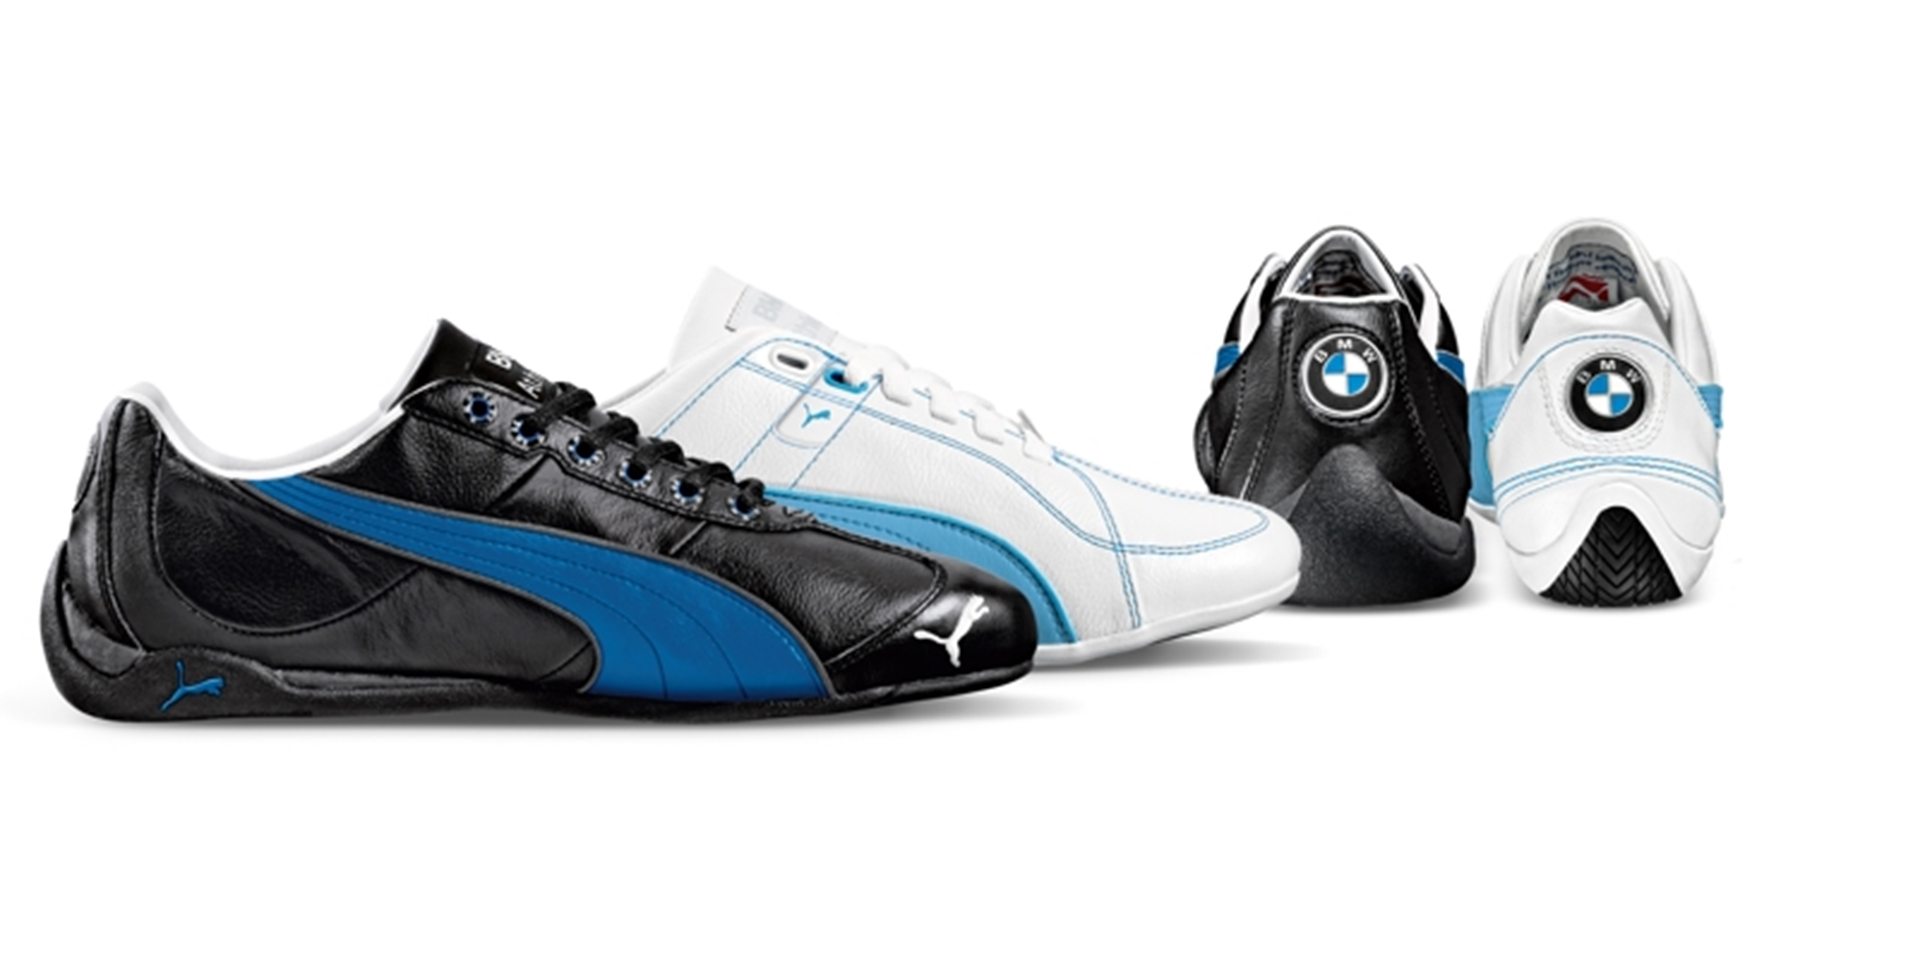 BMW Shoes